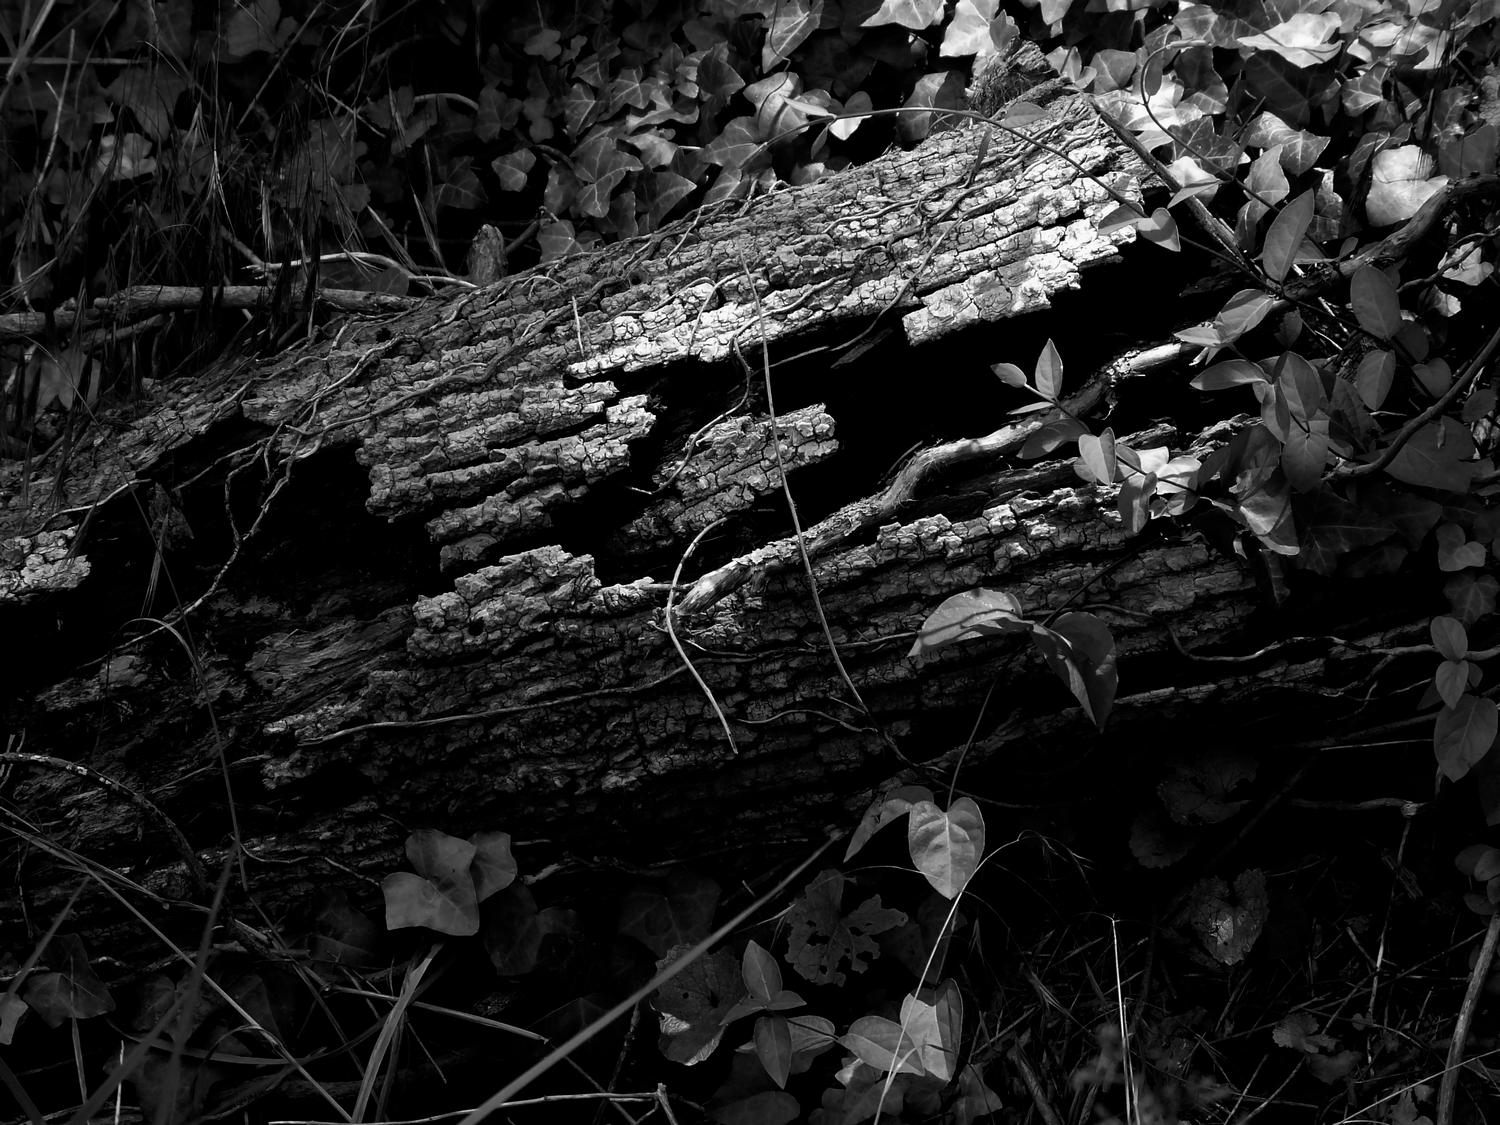 - Here's the old log in dynamic black and white - Panasonic DMC-FZ18 - Tony Karp, design, art, photography, techno-impressionist, techno-impressionism, aerial photography , drone , drones , dji , mavic pro , video , 3D printing - Books -